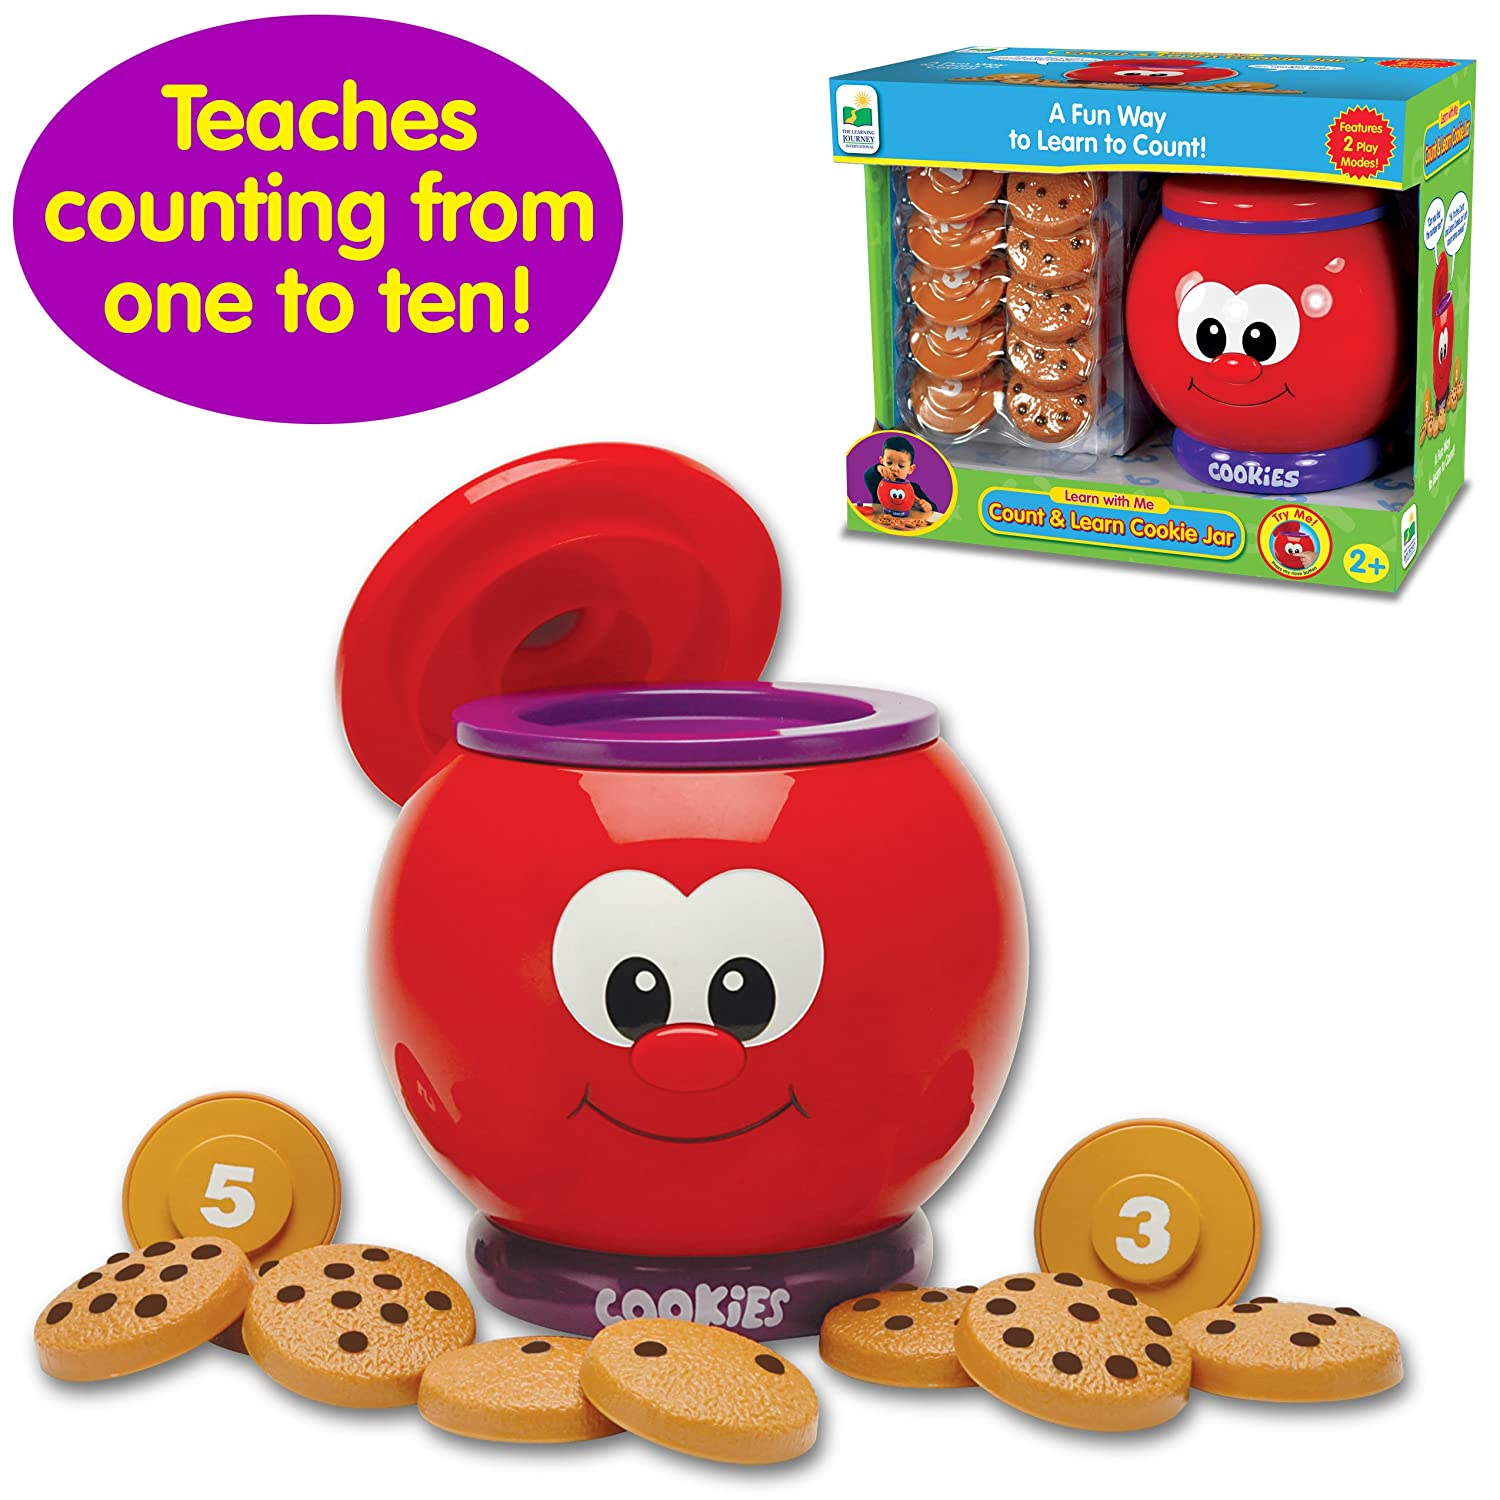 Modern Cookie Jar The Learning Journey Count And Learn Cookie Jar New